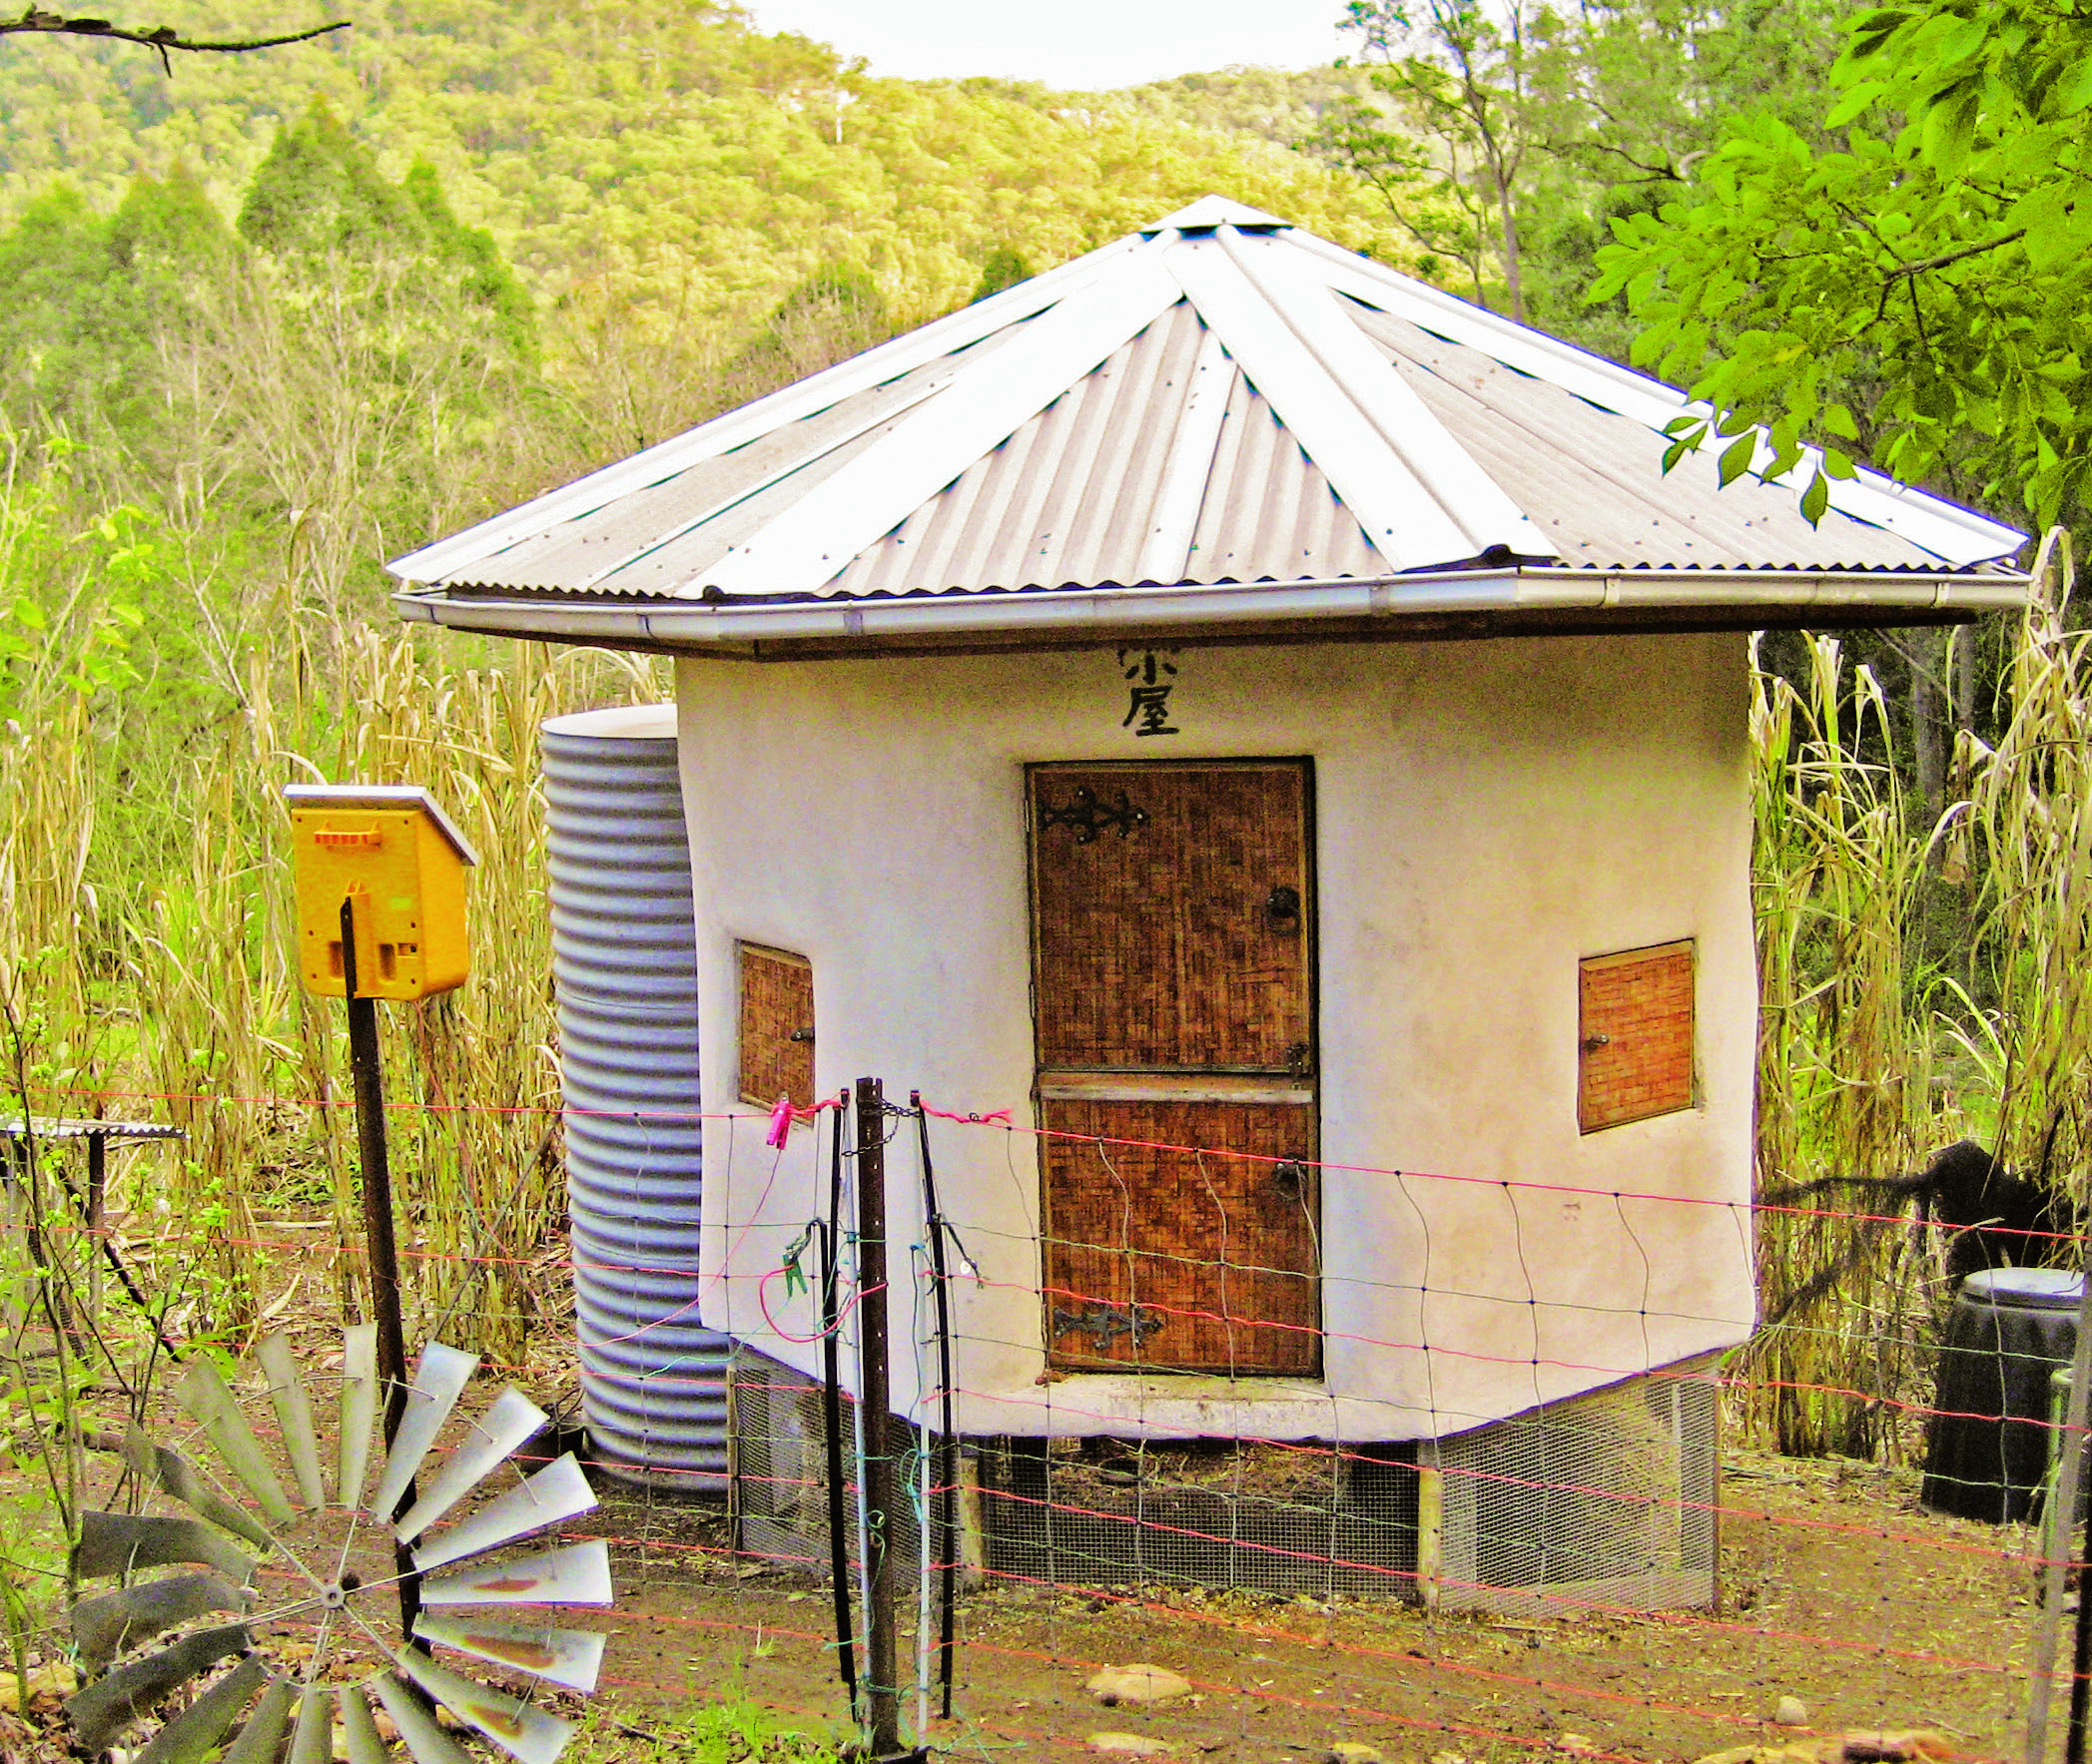 Choosing the right home for your chickens - chook yurt without ventilation